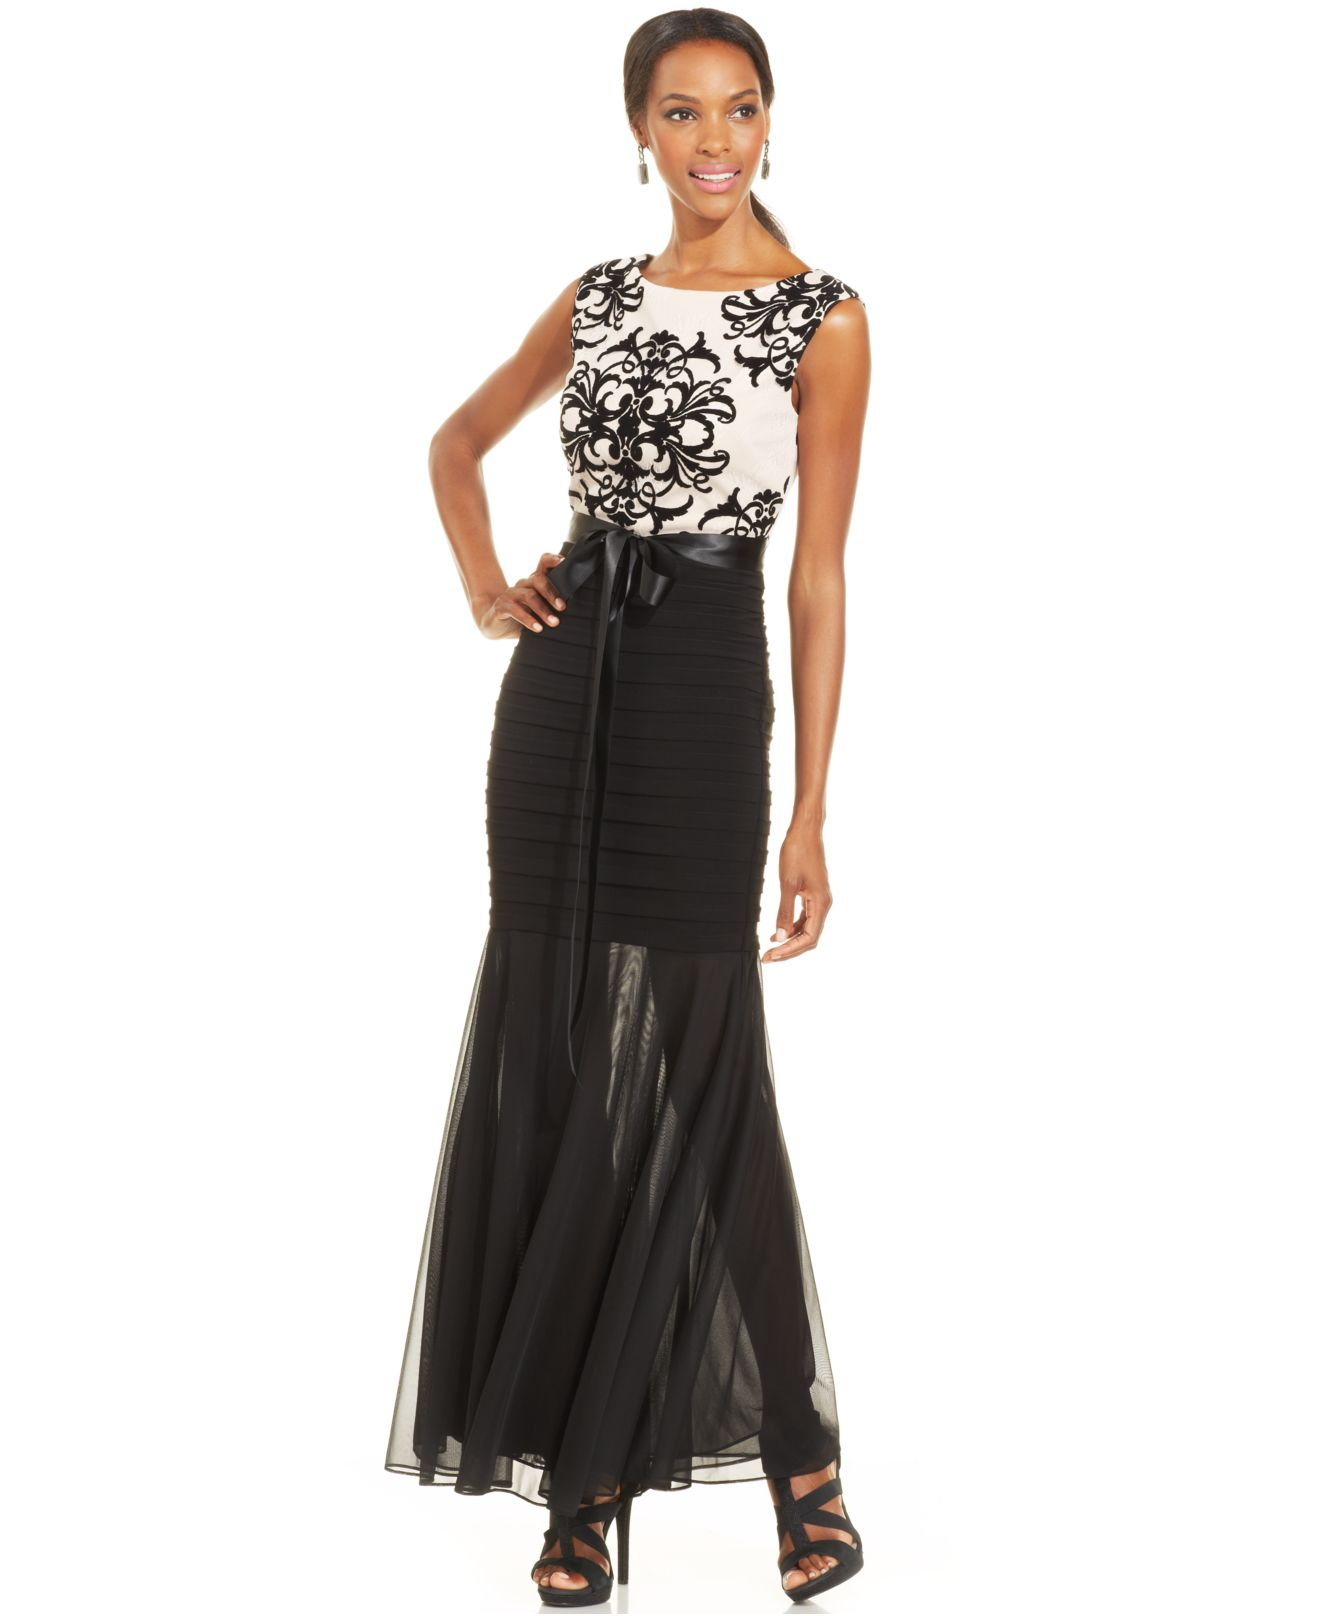 Lyst - Betsy & Adam Petite Contrast-Lace Illusion Mermaid Gown in Black